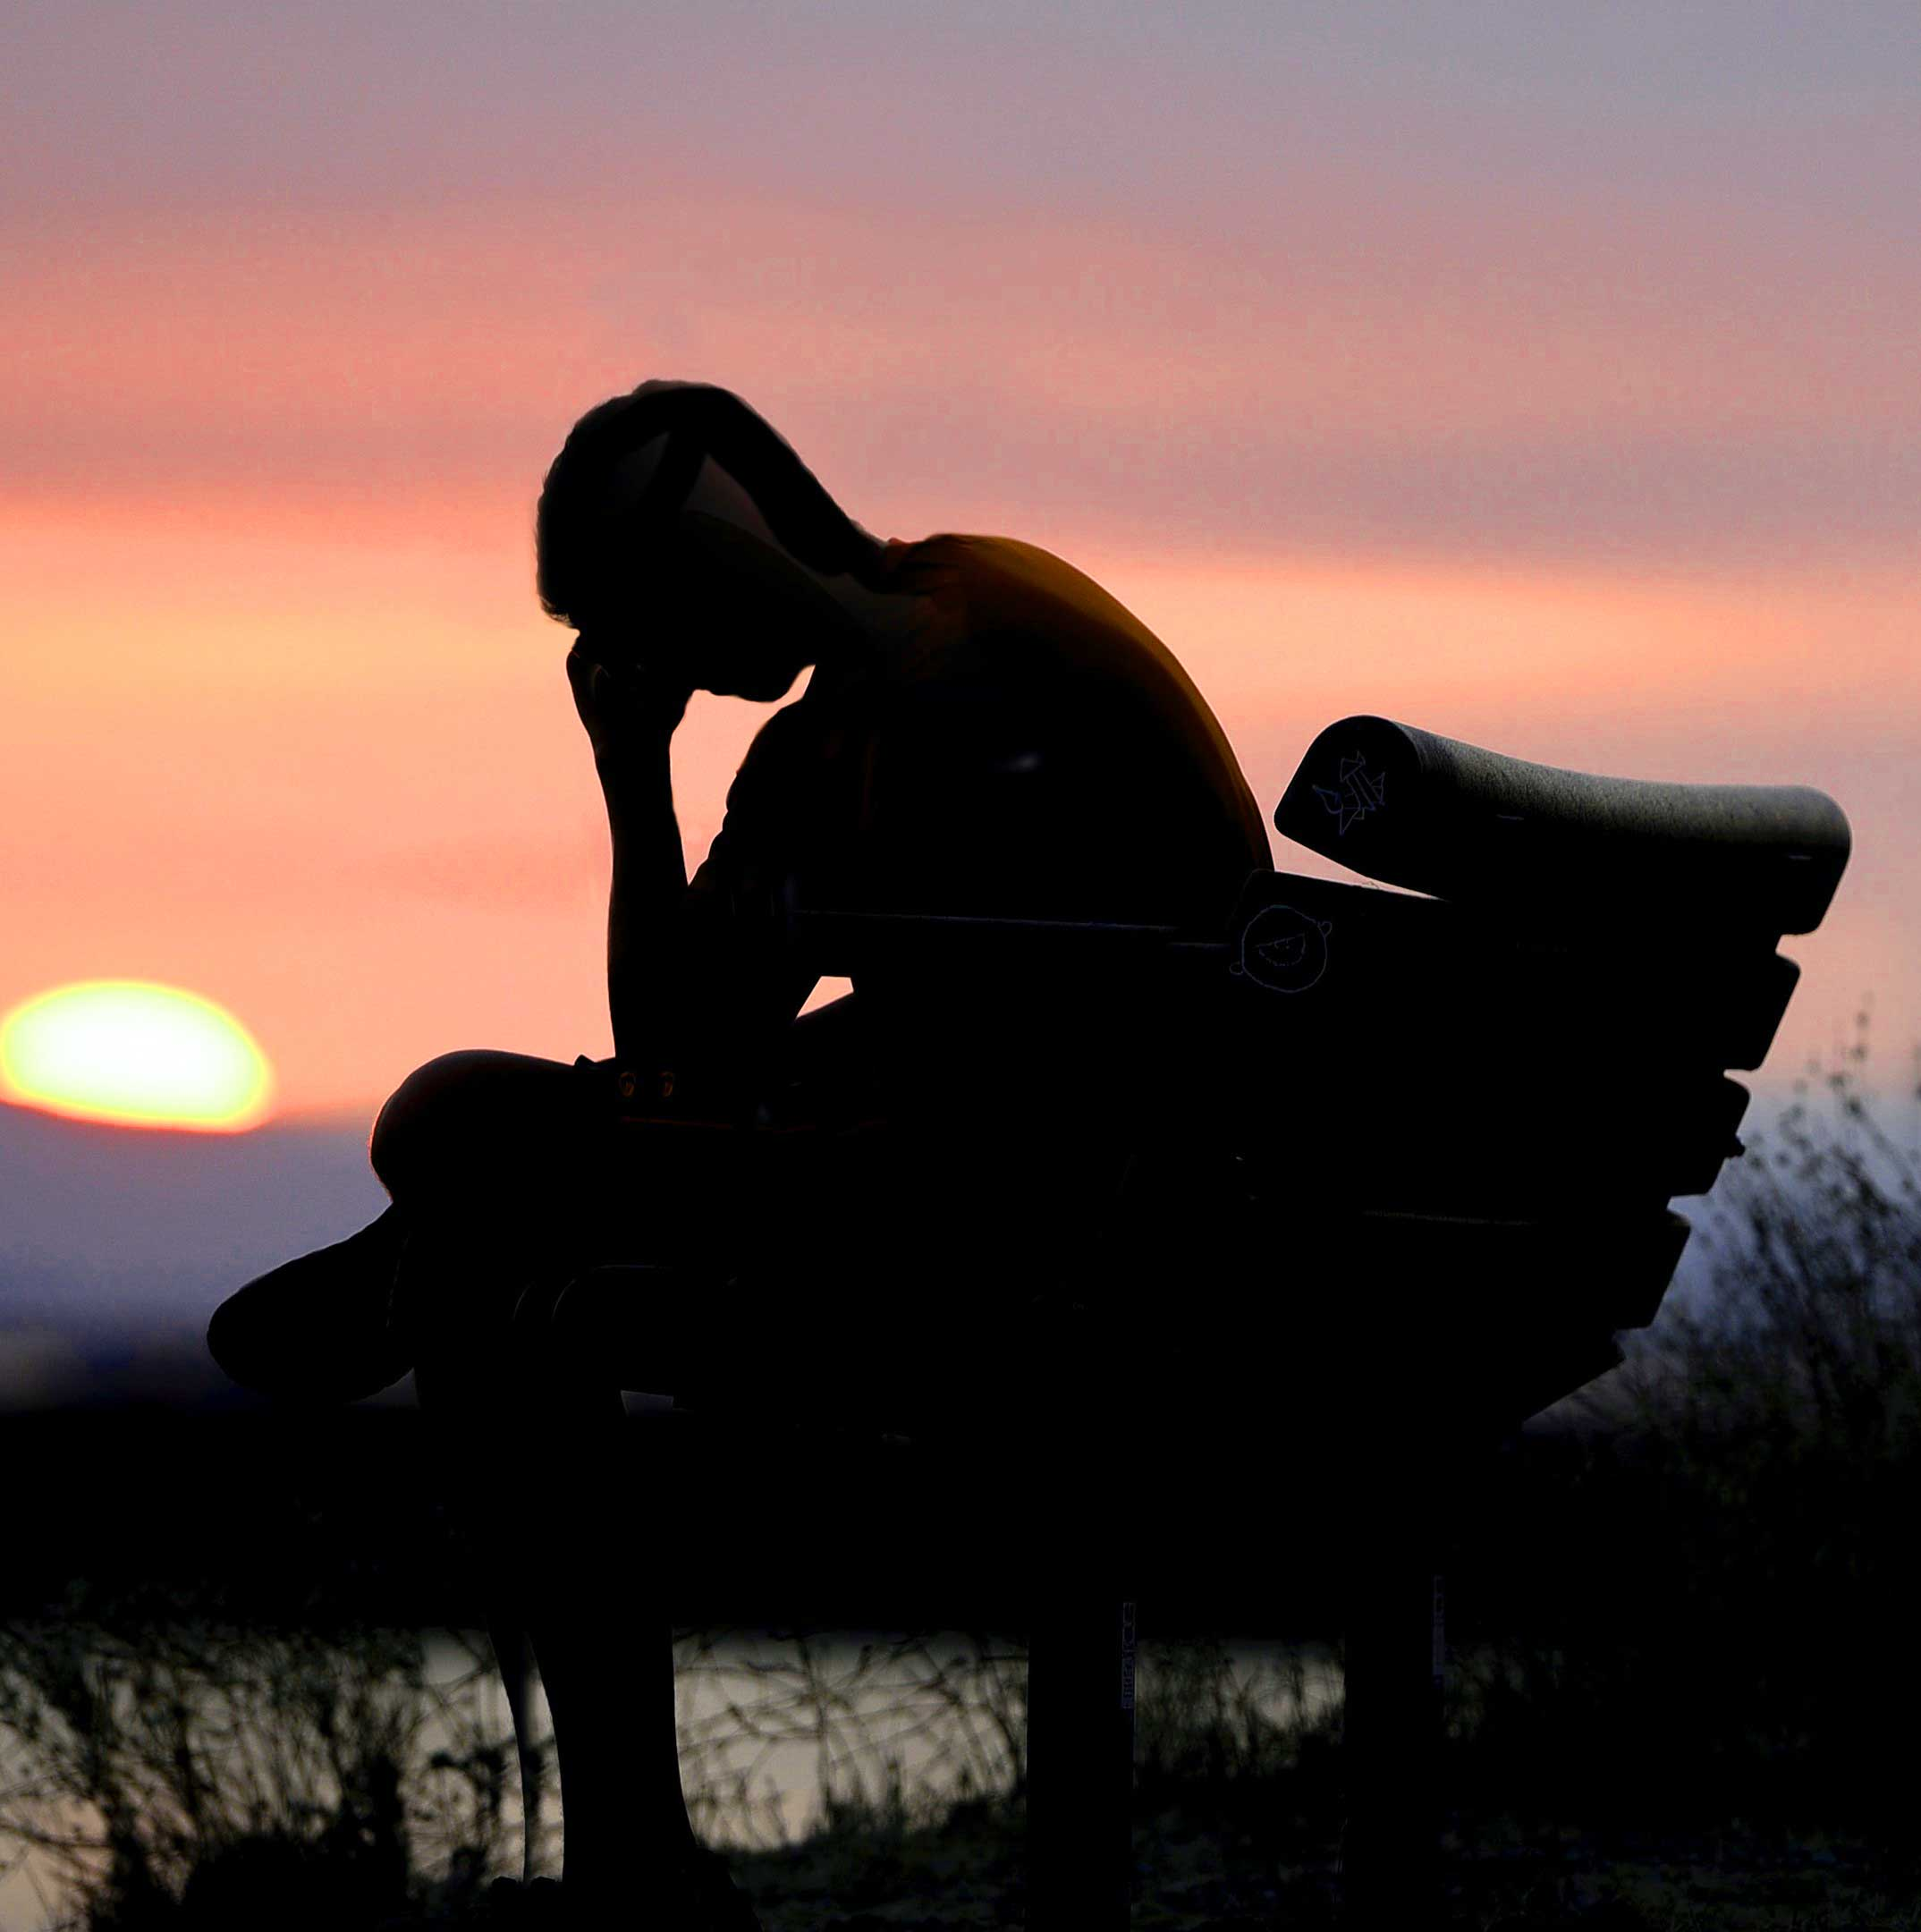 683+ Emotional Dp Images Pics Download [ Best Collection ]